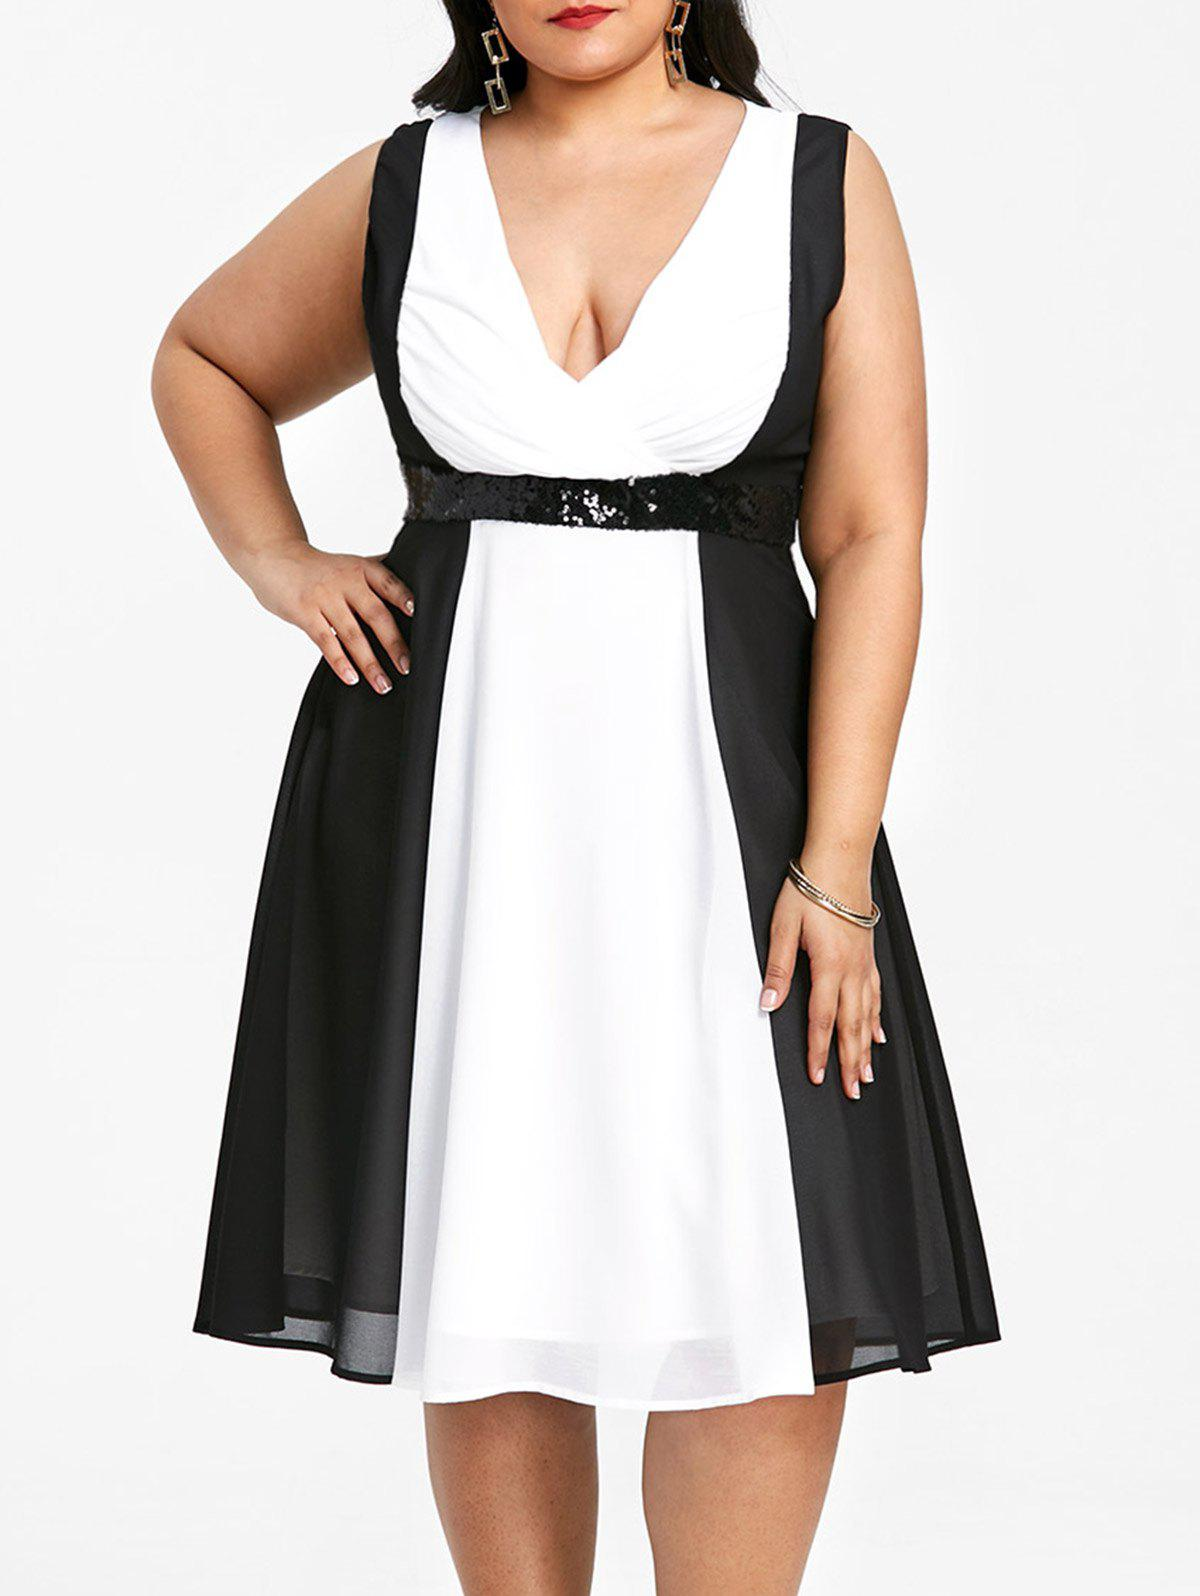 Chic Plus Size Two Tone Sleeveless Plunging Dress